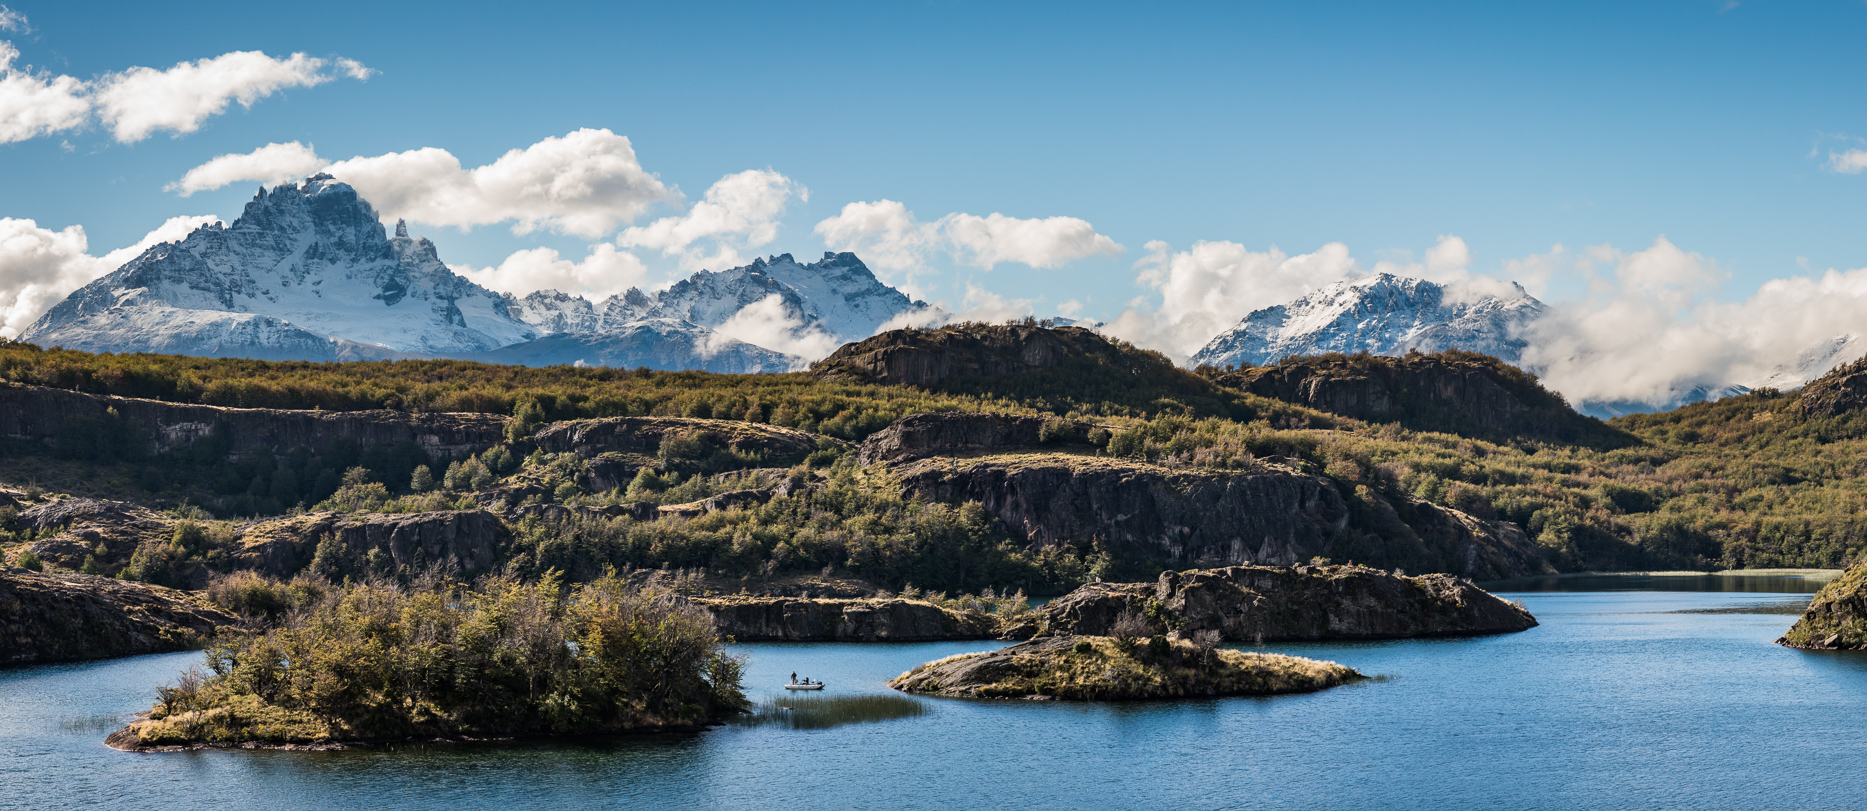 Chile fly fishing lodges